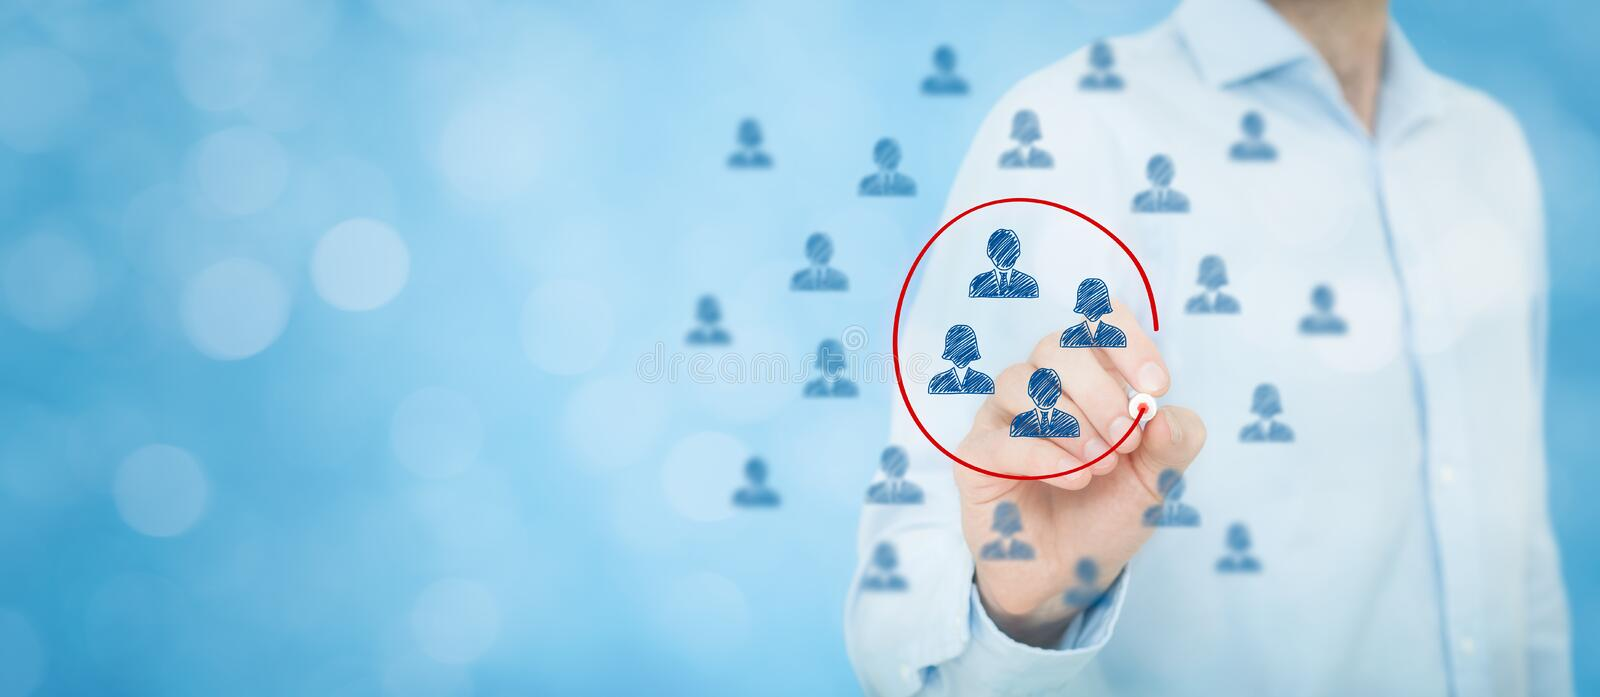 Marketing segmentation. Target audience, customers care, customer relationship management (CRM), human resources, customer analysis and focus group concepts royalty free stock photography